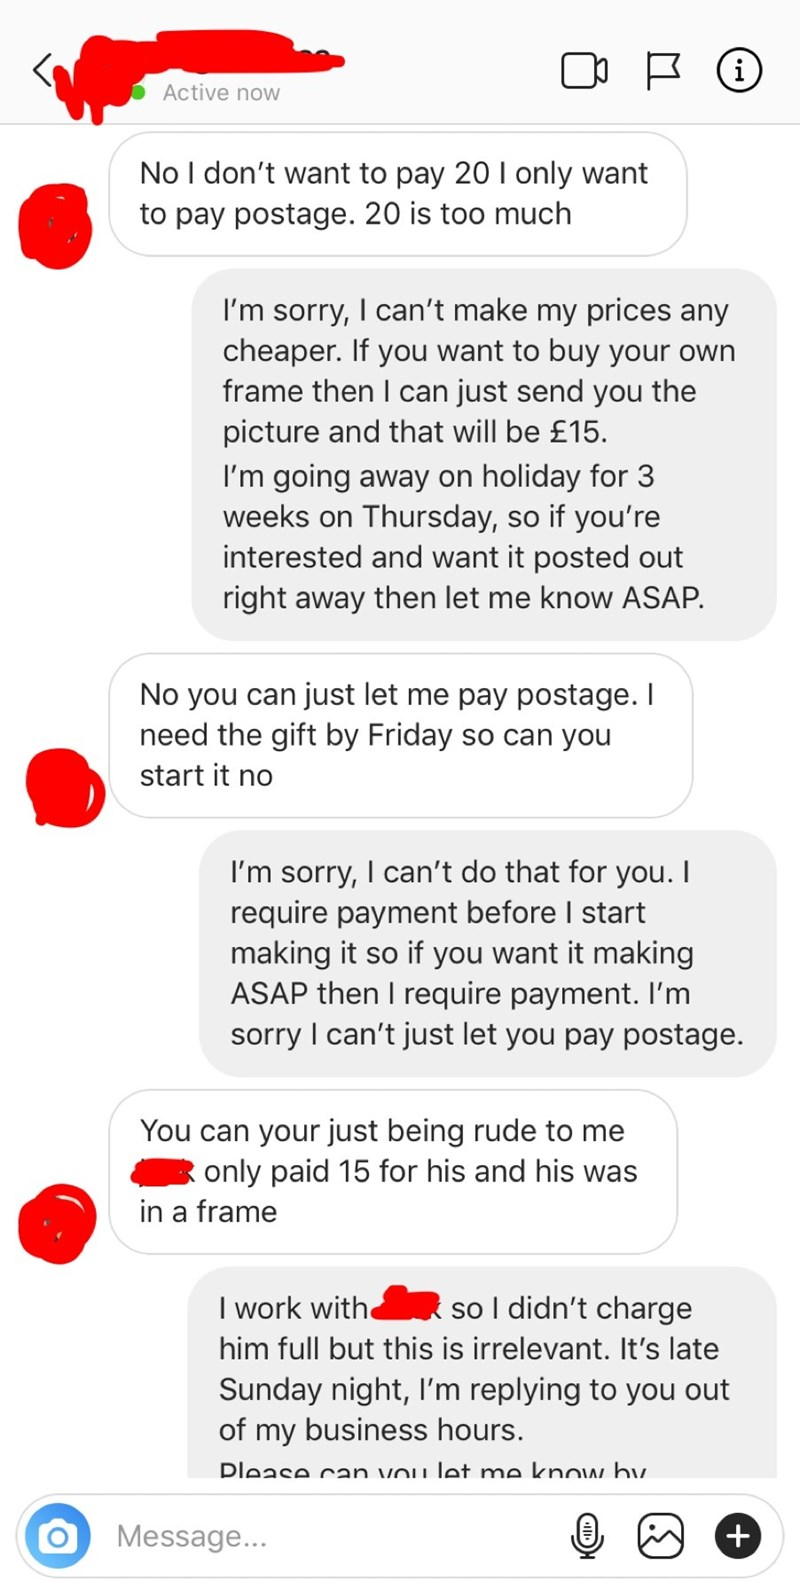 Choosing beggar claims that the seller is being rude to them because someone they knew only paid 15 and with a frame.